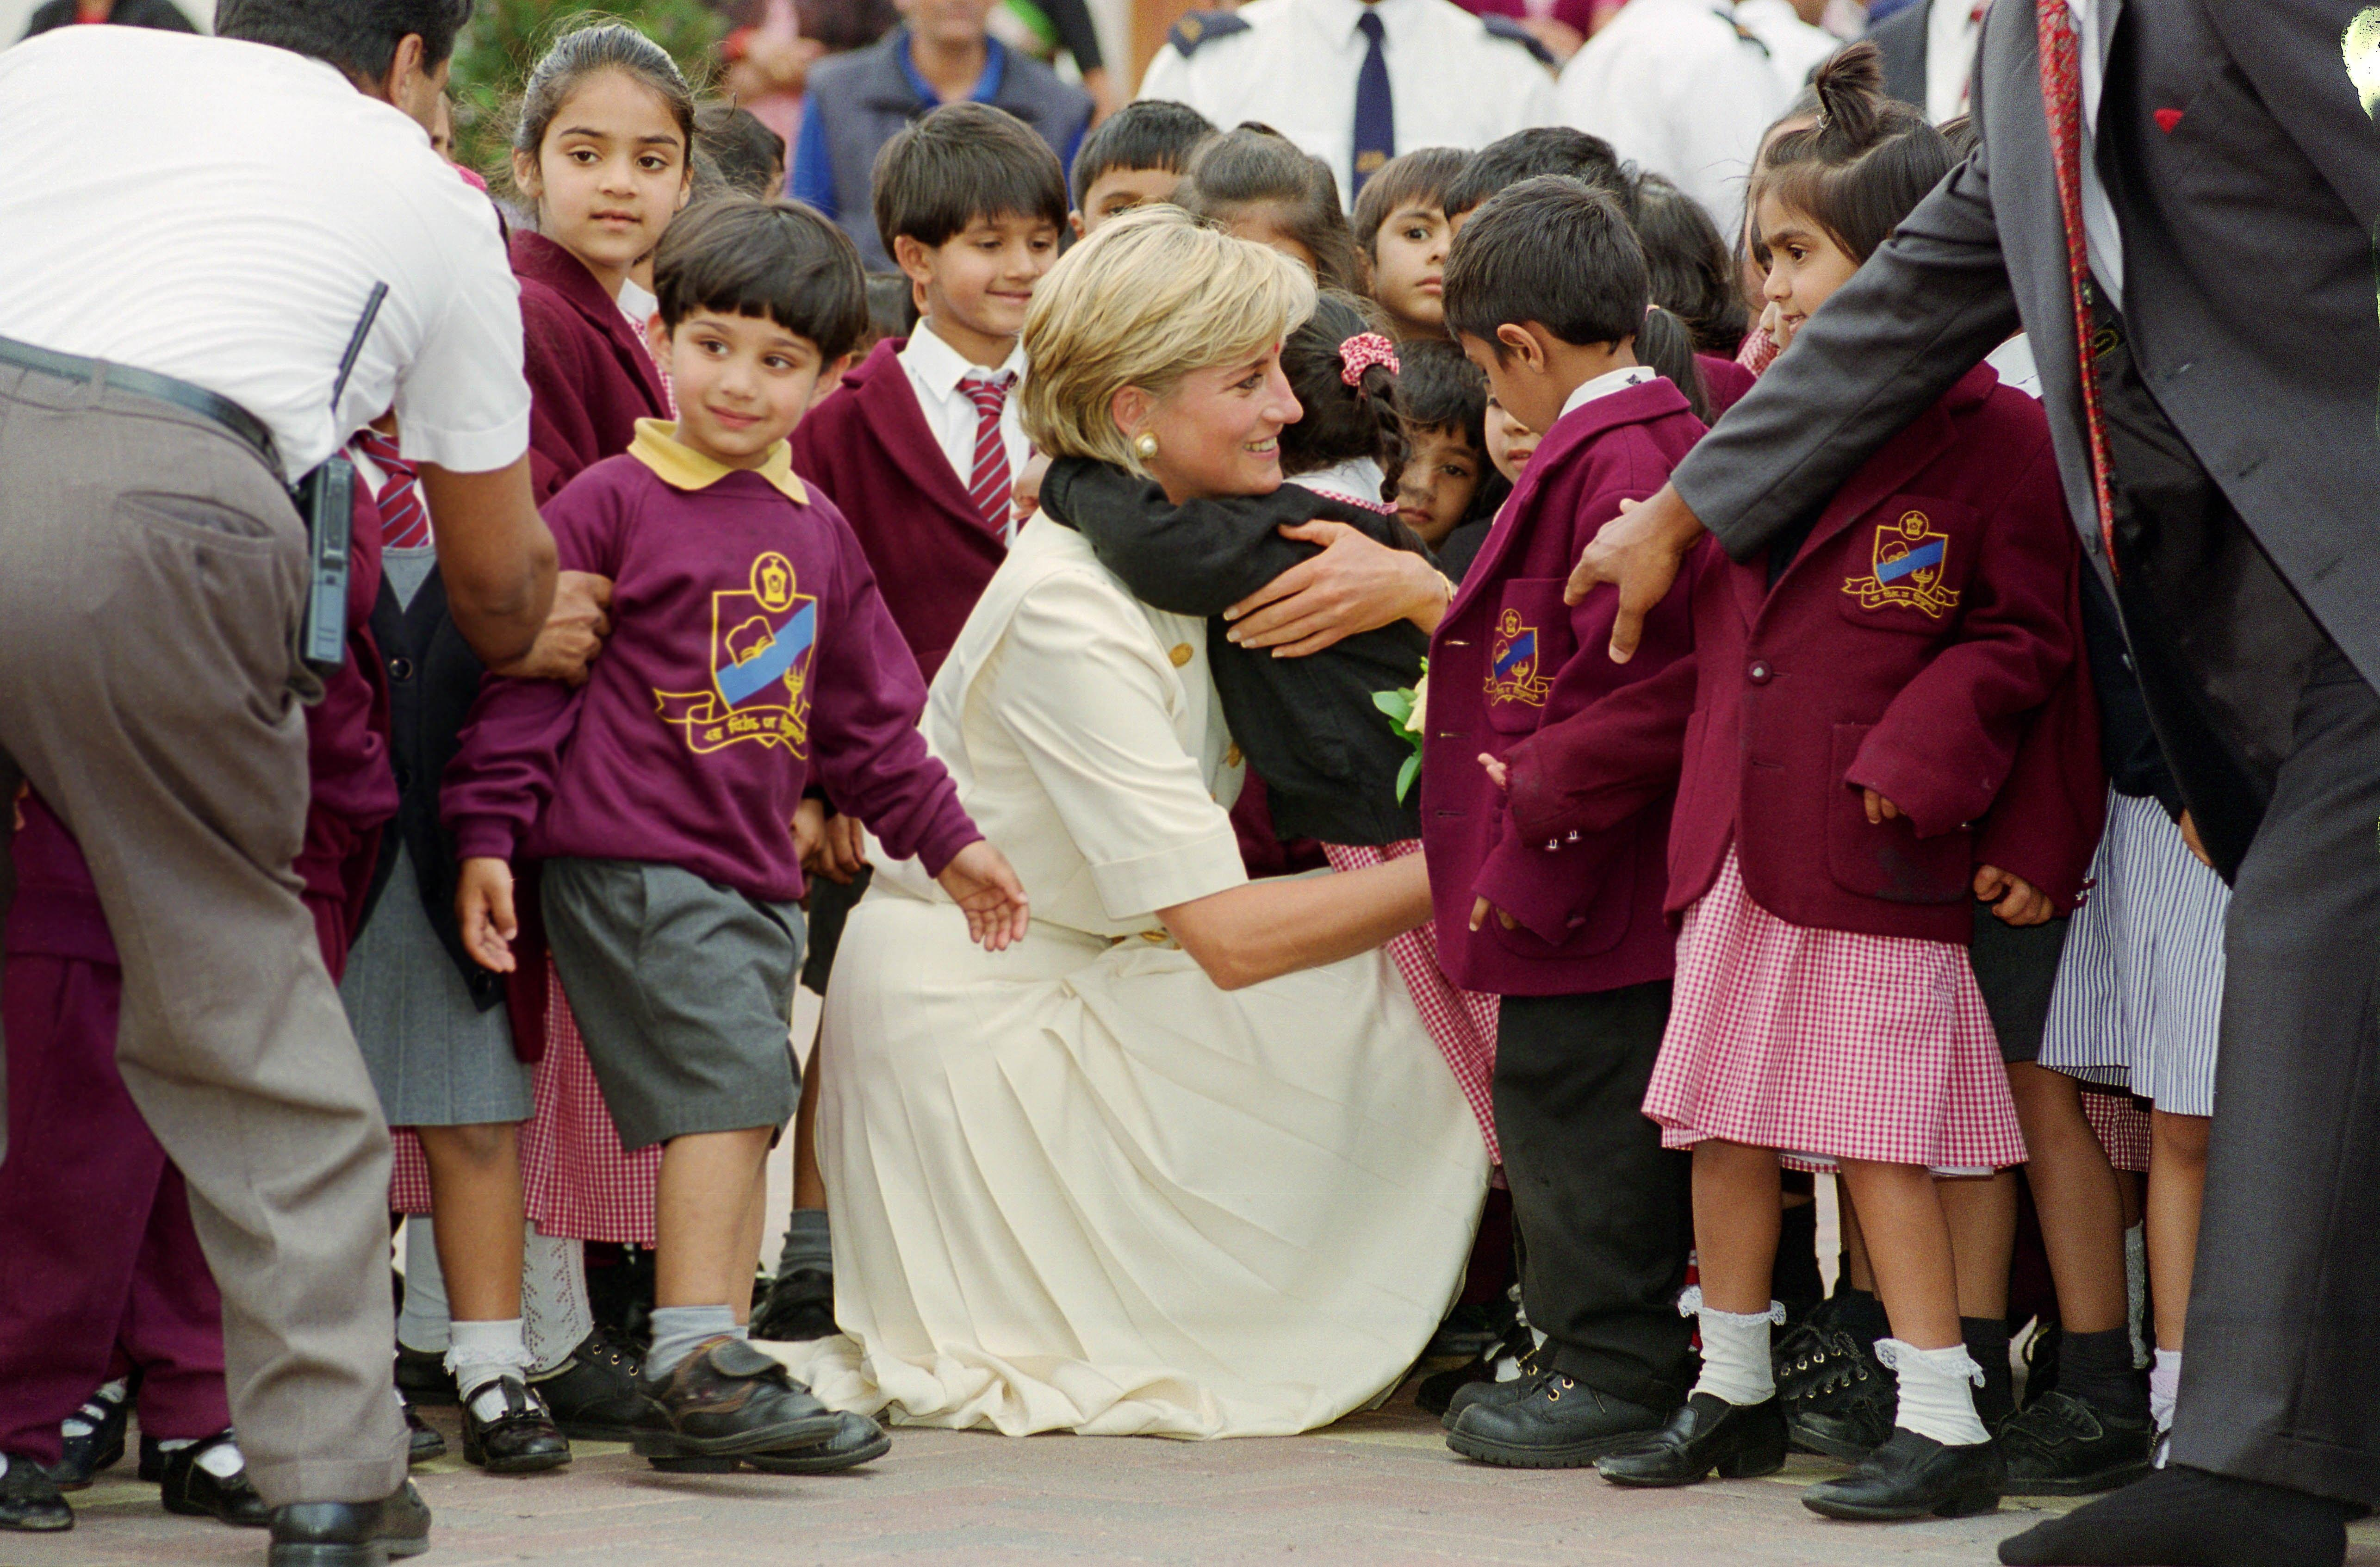 Princess Diana embraces a school pupil in Neasden in 1997 (Photo by Tim Graham/Getty Images)